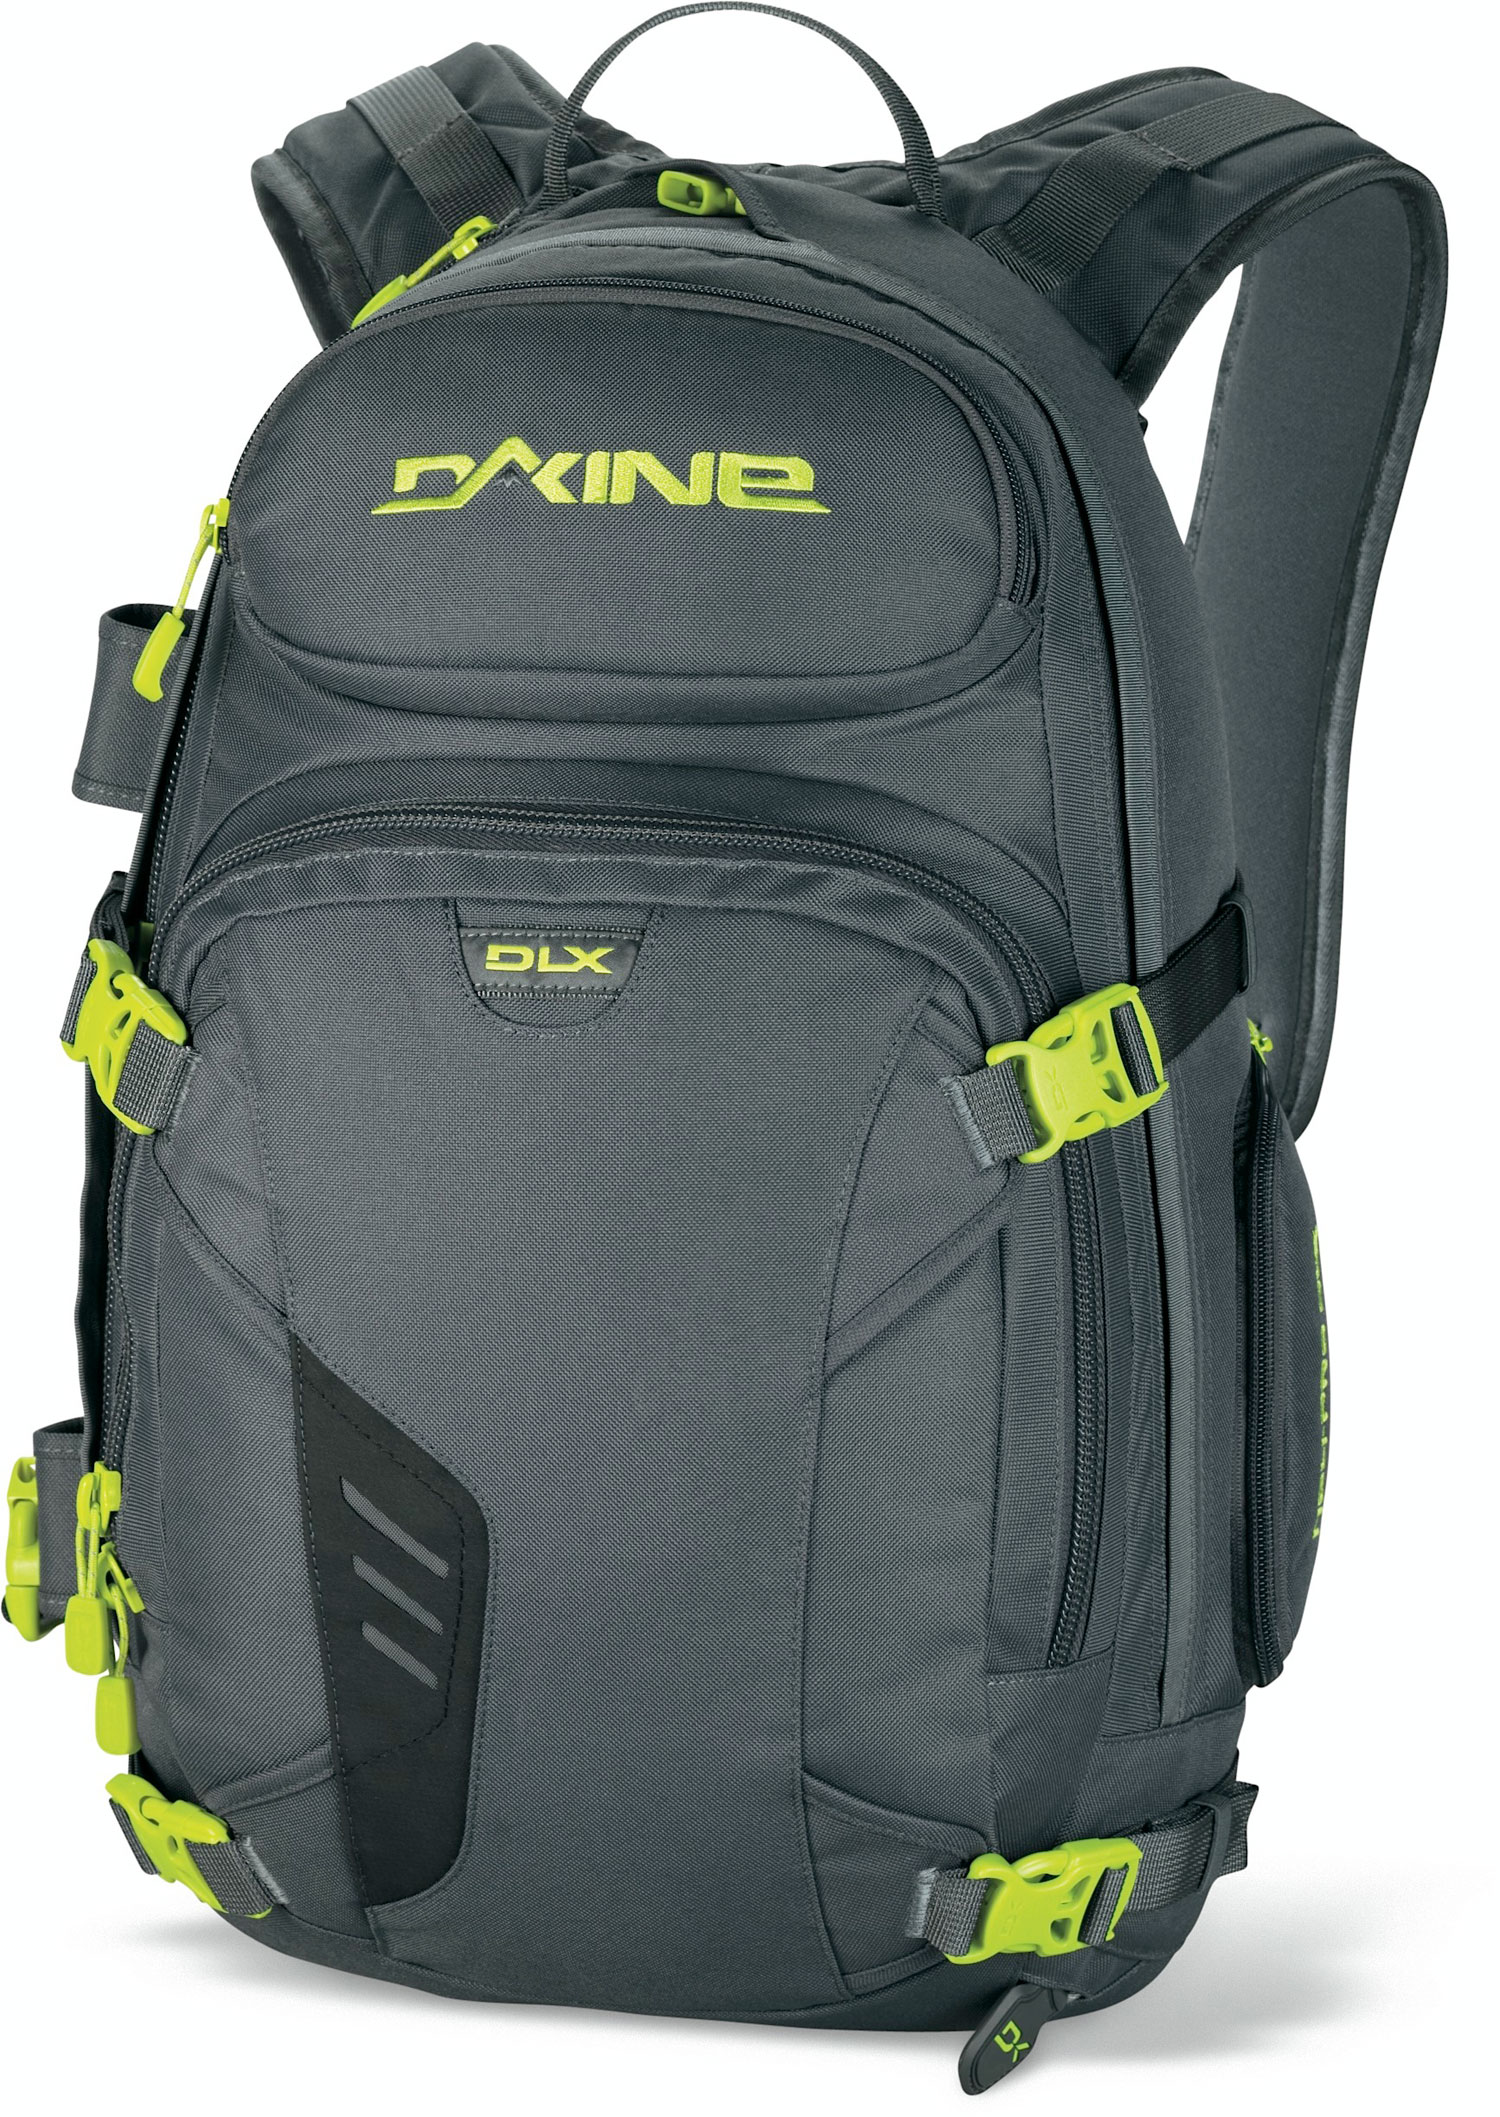 "Ski Key Features of the Dakine Heli Pro DLX 20L Backpack: 1200 cu. in. [ 20L ] 21 x 11 x 5.5"" [ 53 x 28 x 14cm ] 3 lbs. [ 1.4kg ] 600D Polyester cross and vertical snowboard carry Retractable cable ski carry Fleece lined goggle pocket Deployable water bottle pocket Insulated hydro sleeve quick draw ice axe sleeve External snow tool / shovel pocket Padded waist belt - $105.00"